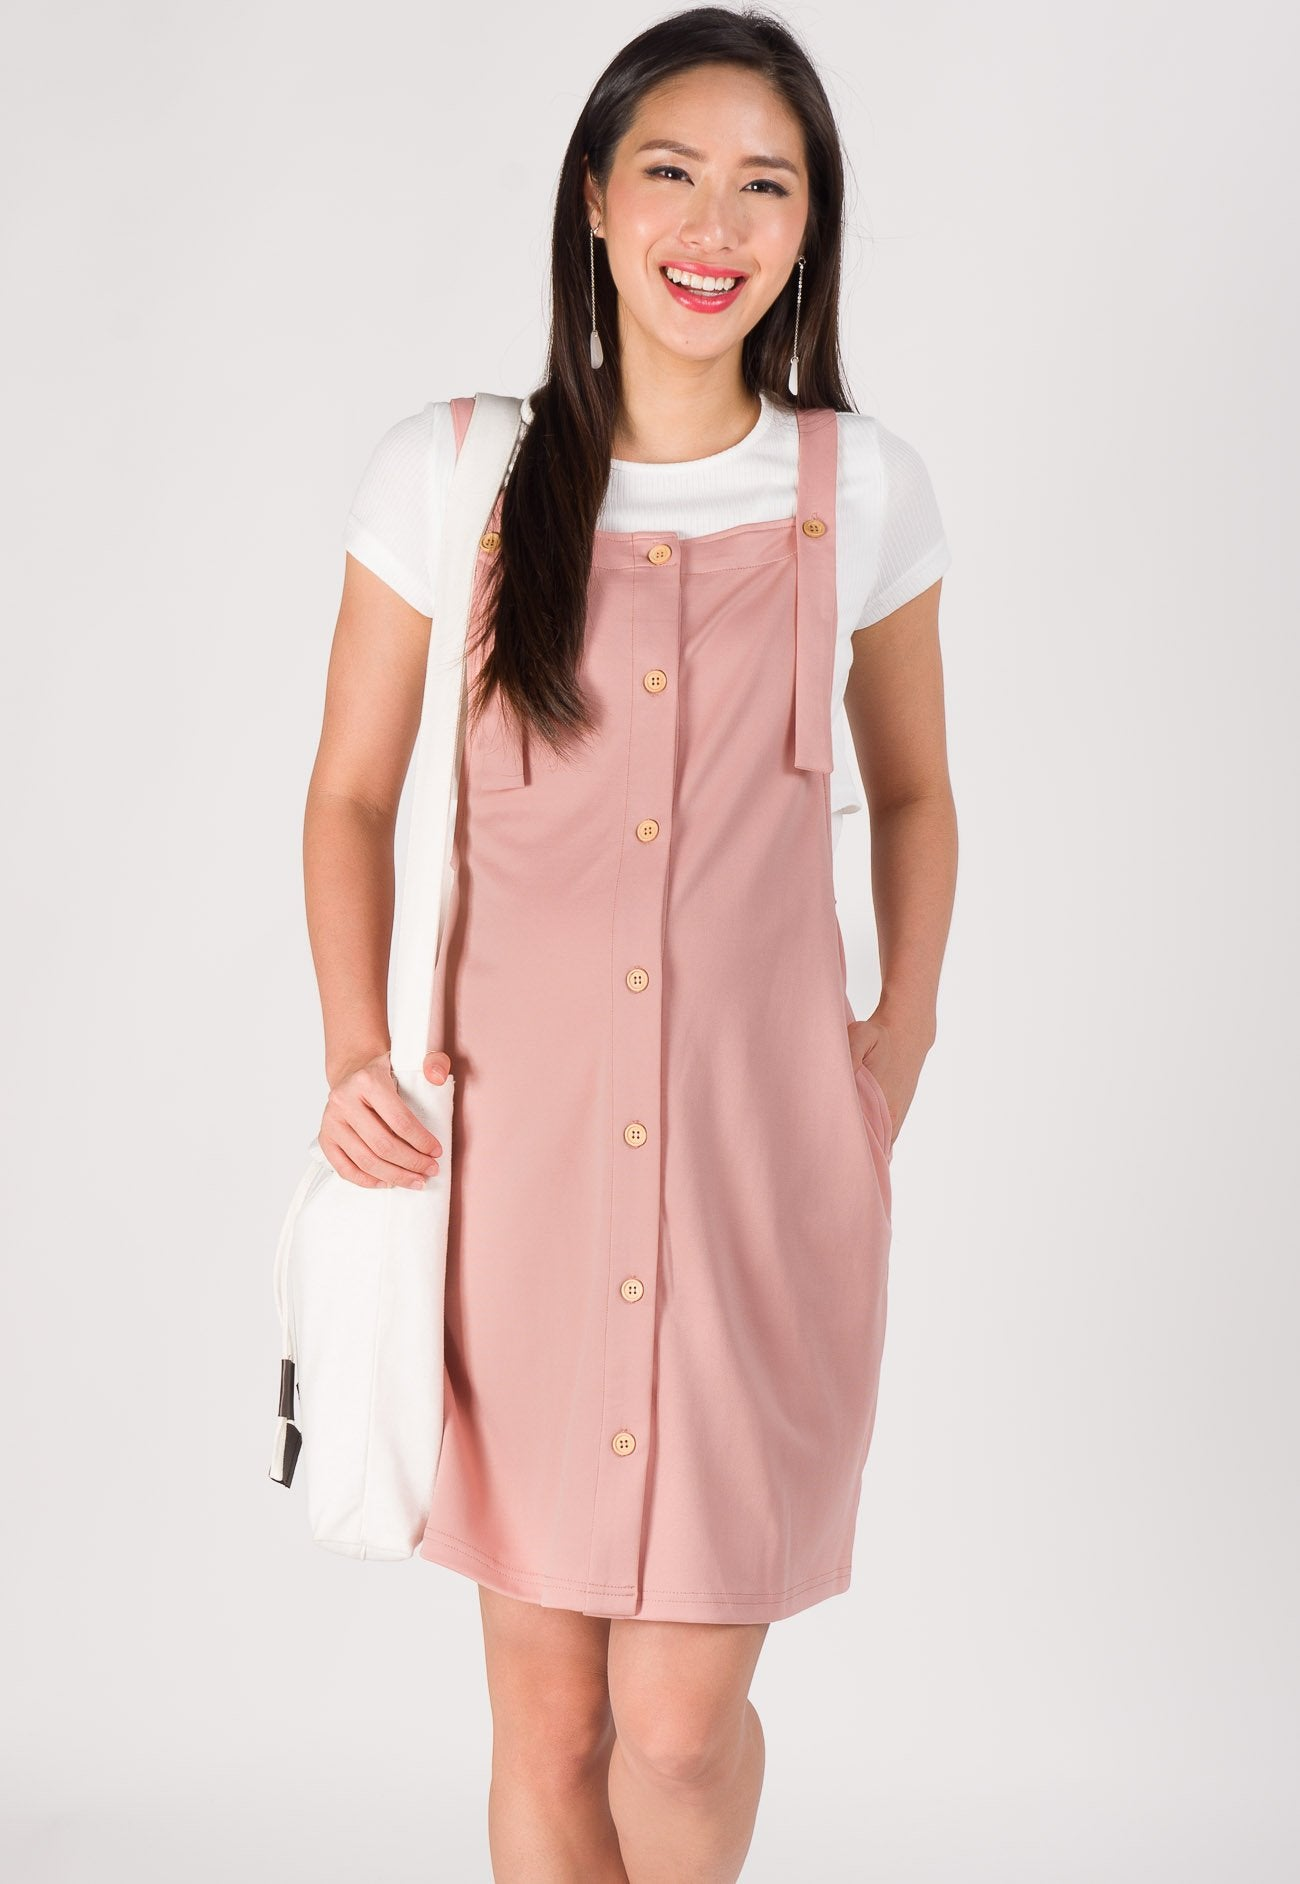 Maya Overall Nursing Dress in Pink  by Jump Eat Cry - Maternity and nursing wear